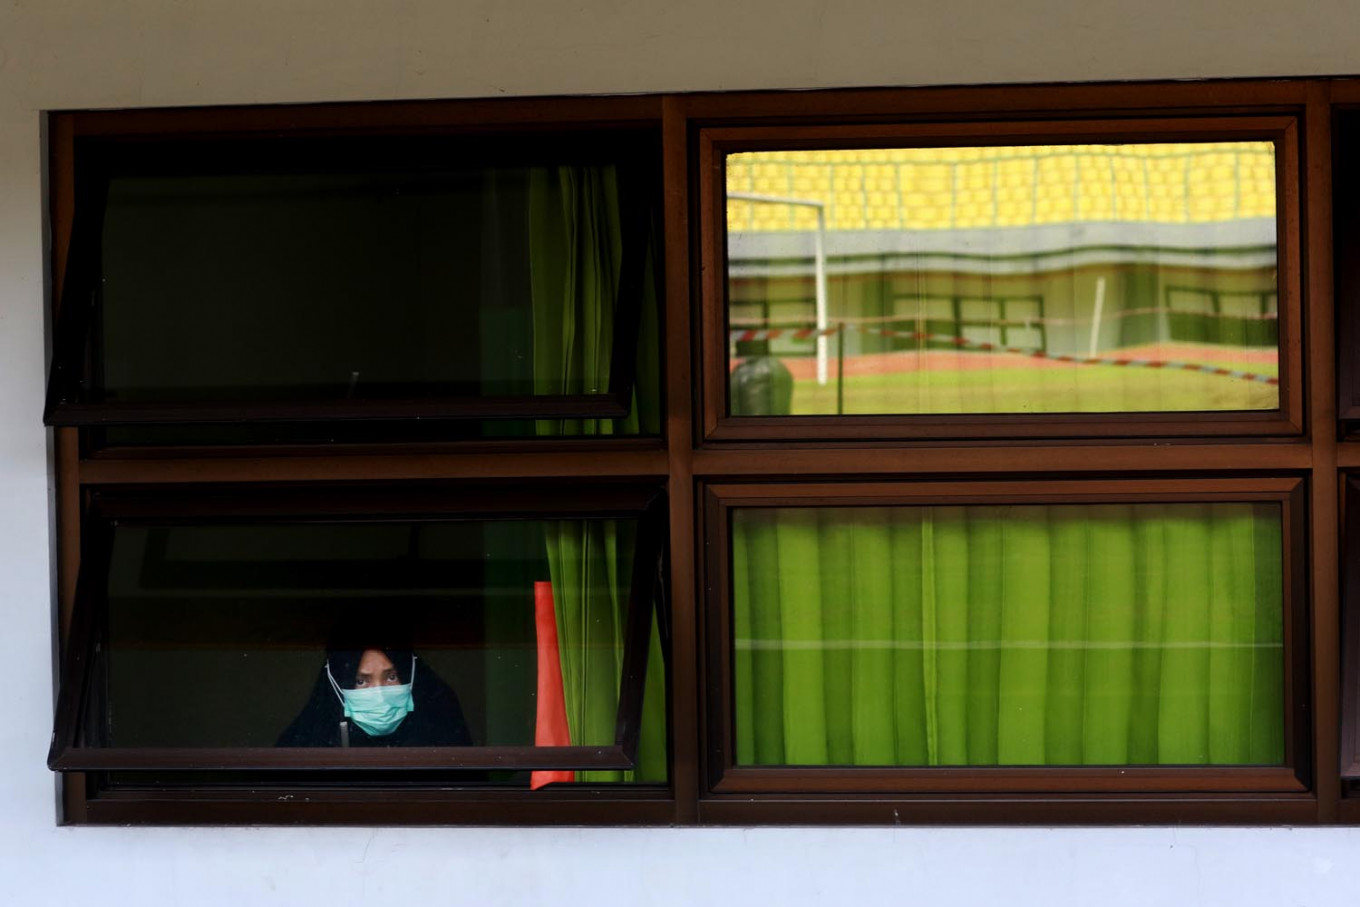 An asymptomatic COVID-19 patient looks out the window while undergoing isolation at the Patriot Candrabhaga Stadium isolation center in Bekasi, West Java on October. 2. 2020. The isolation ward at the stadium has the capacity to house 55 patients. JP/Dhoni Setiawan